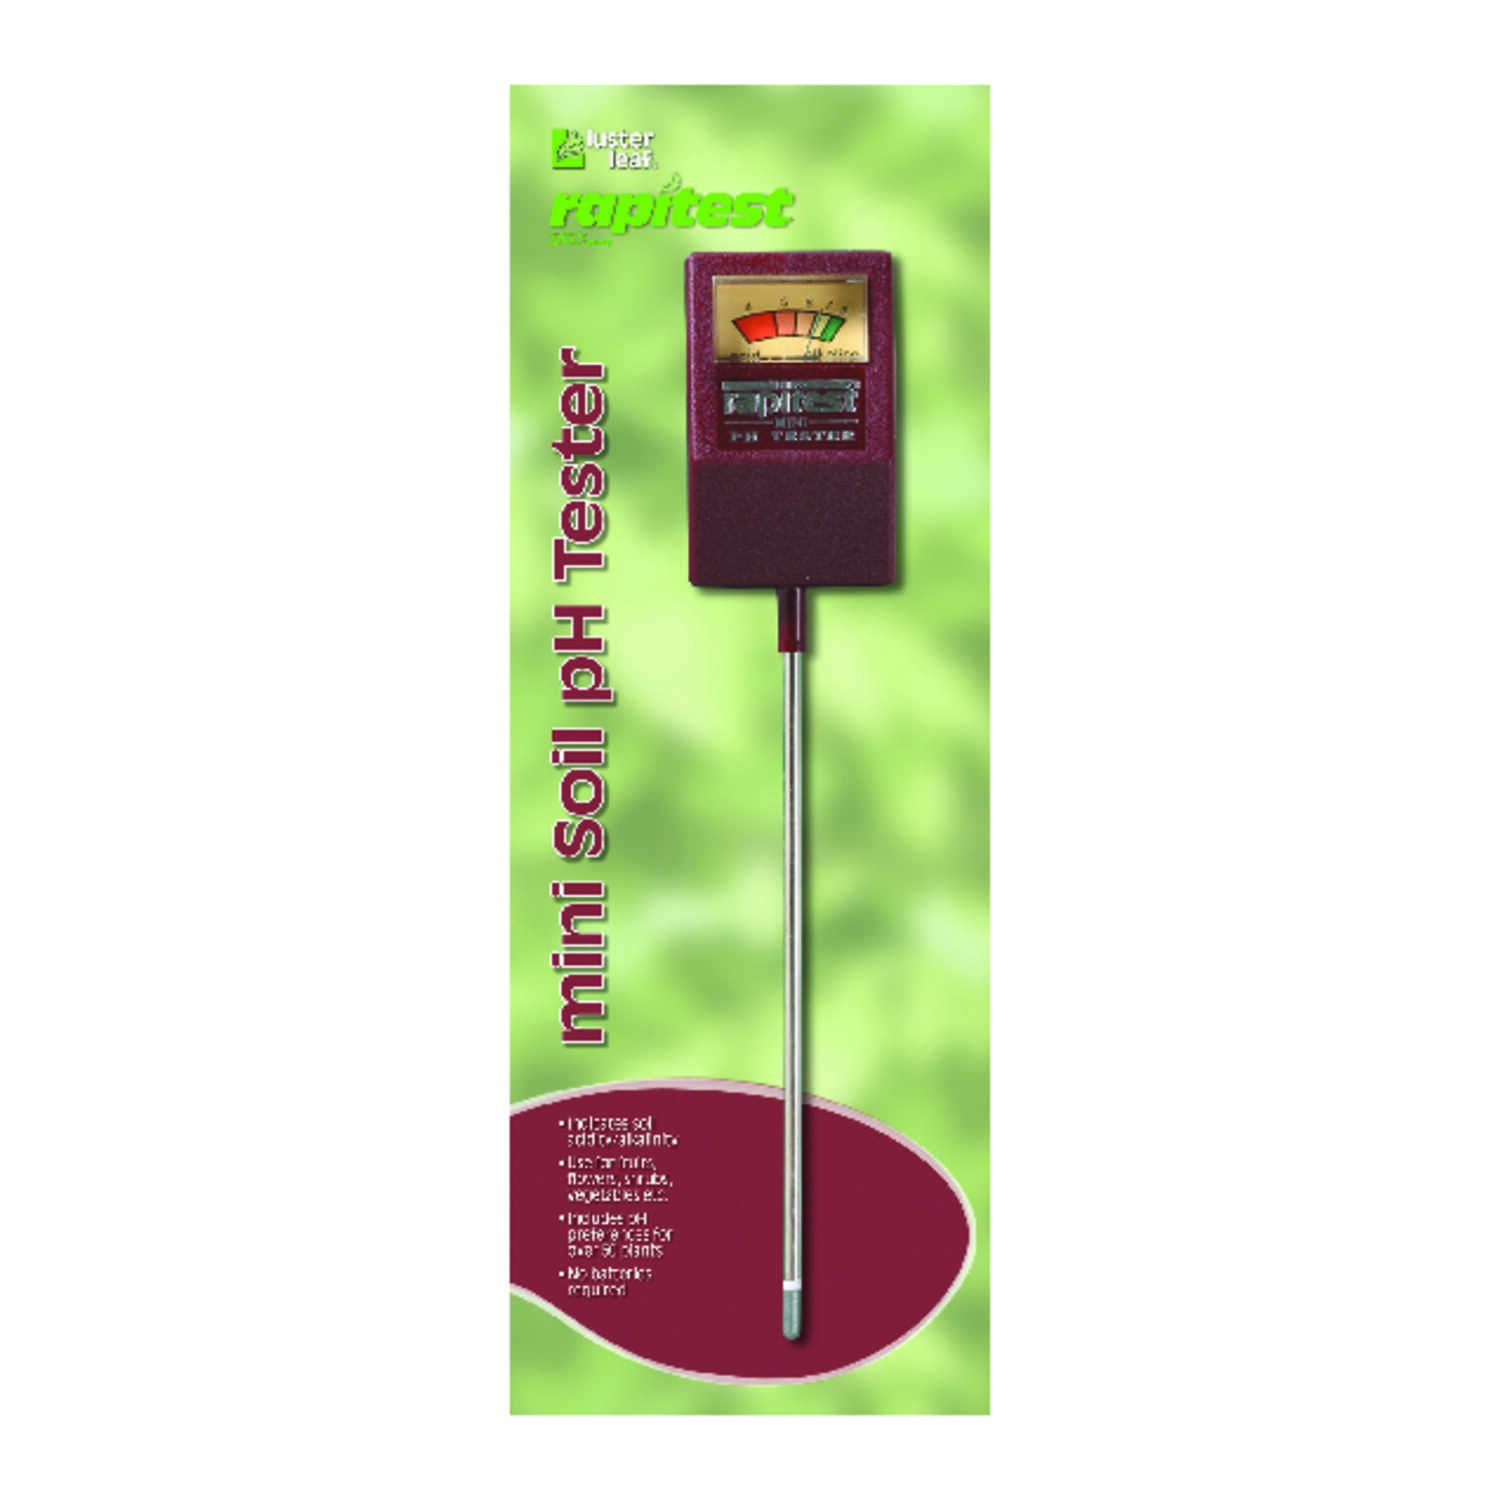 Luster Leaf  Rapitest  Analog  pH Meter